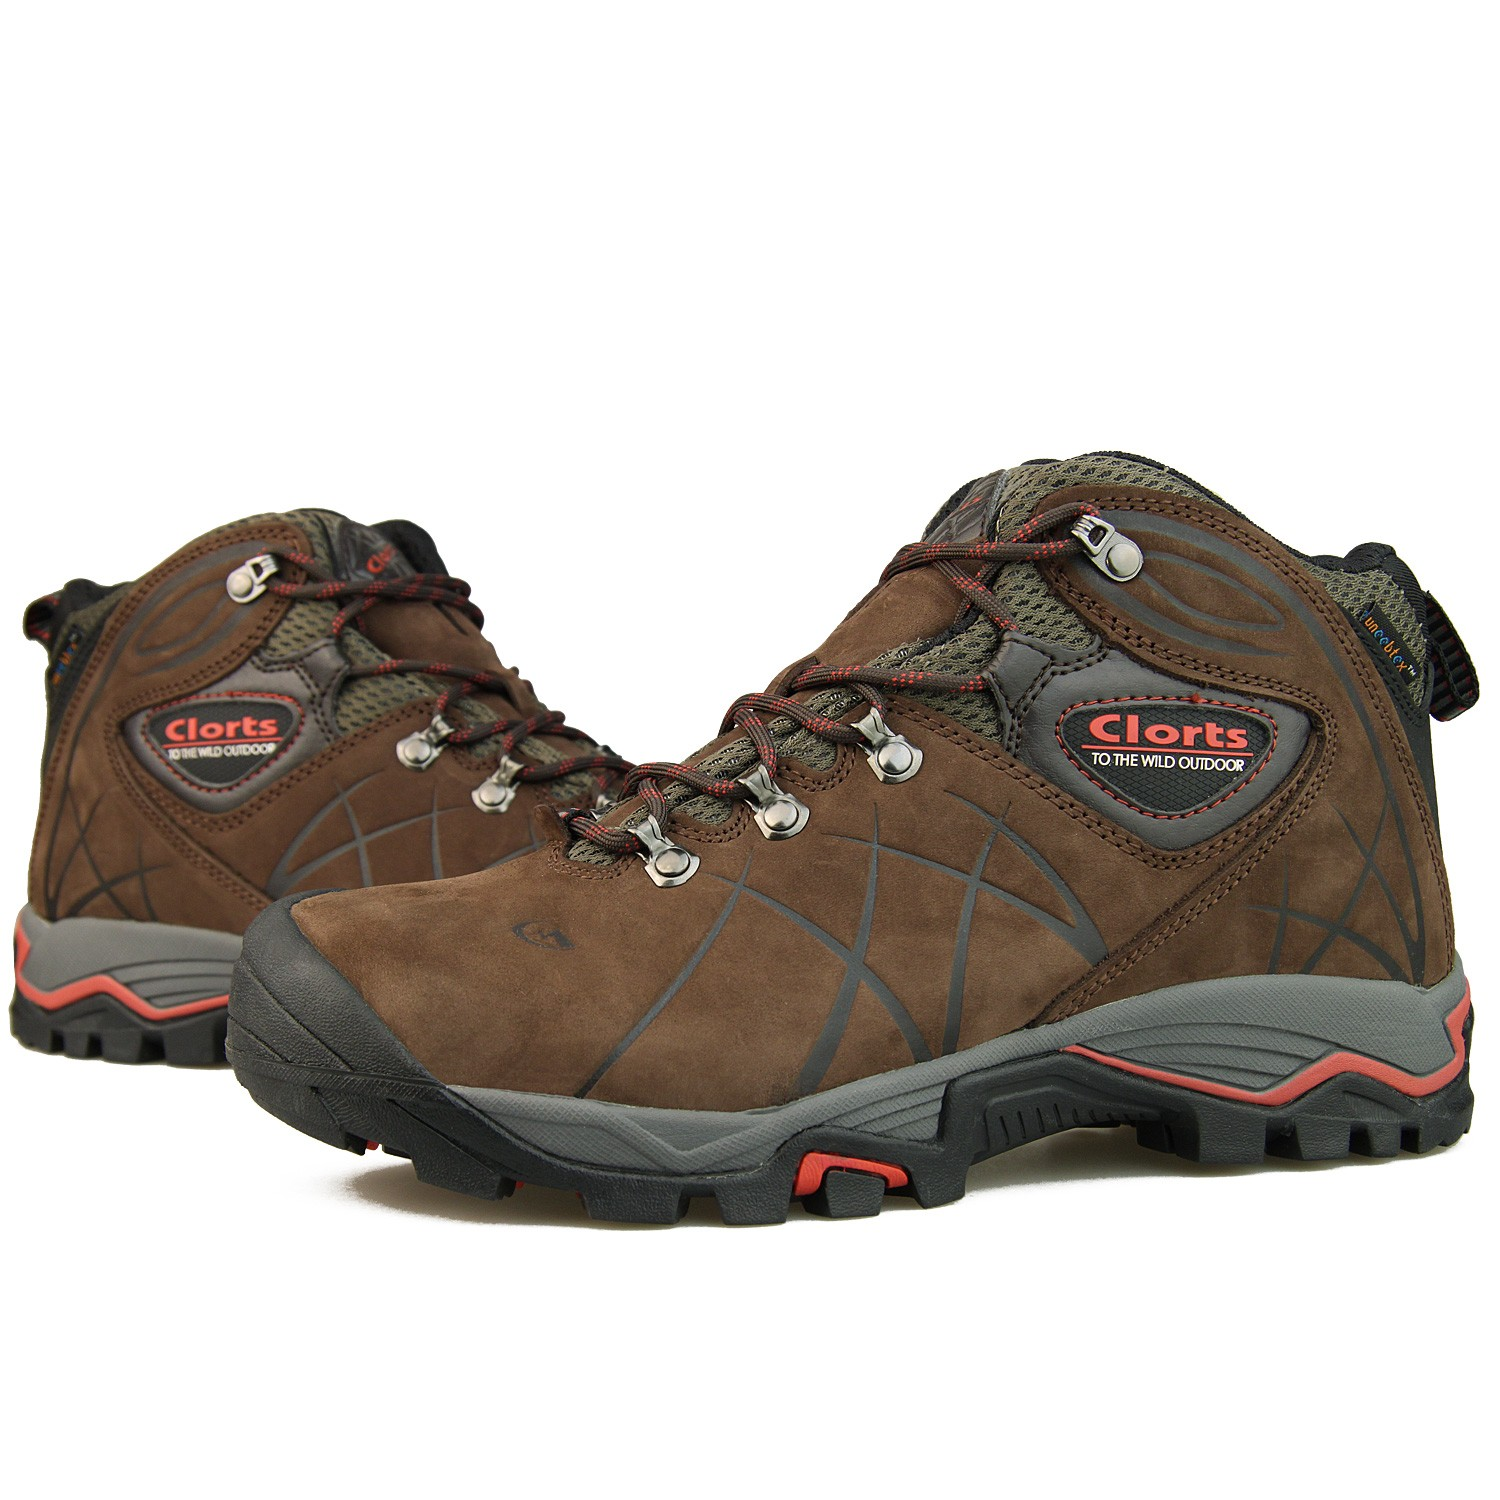 Rugged Mountaineering Hiking Boots